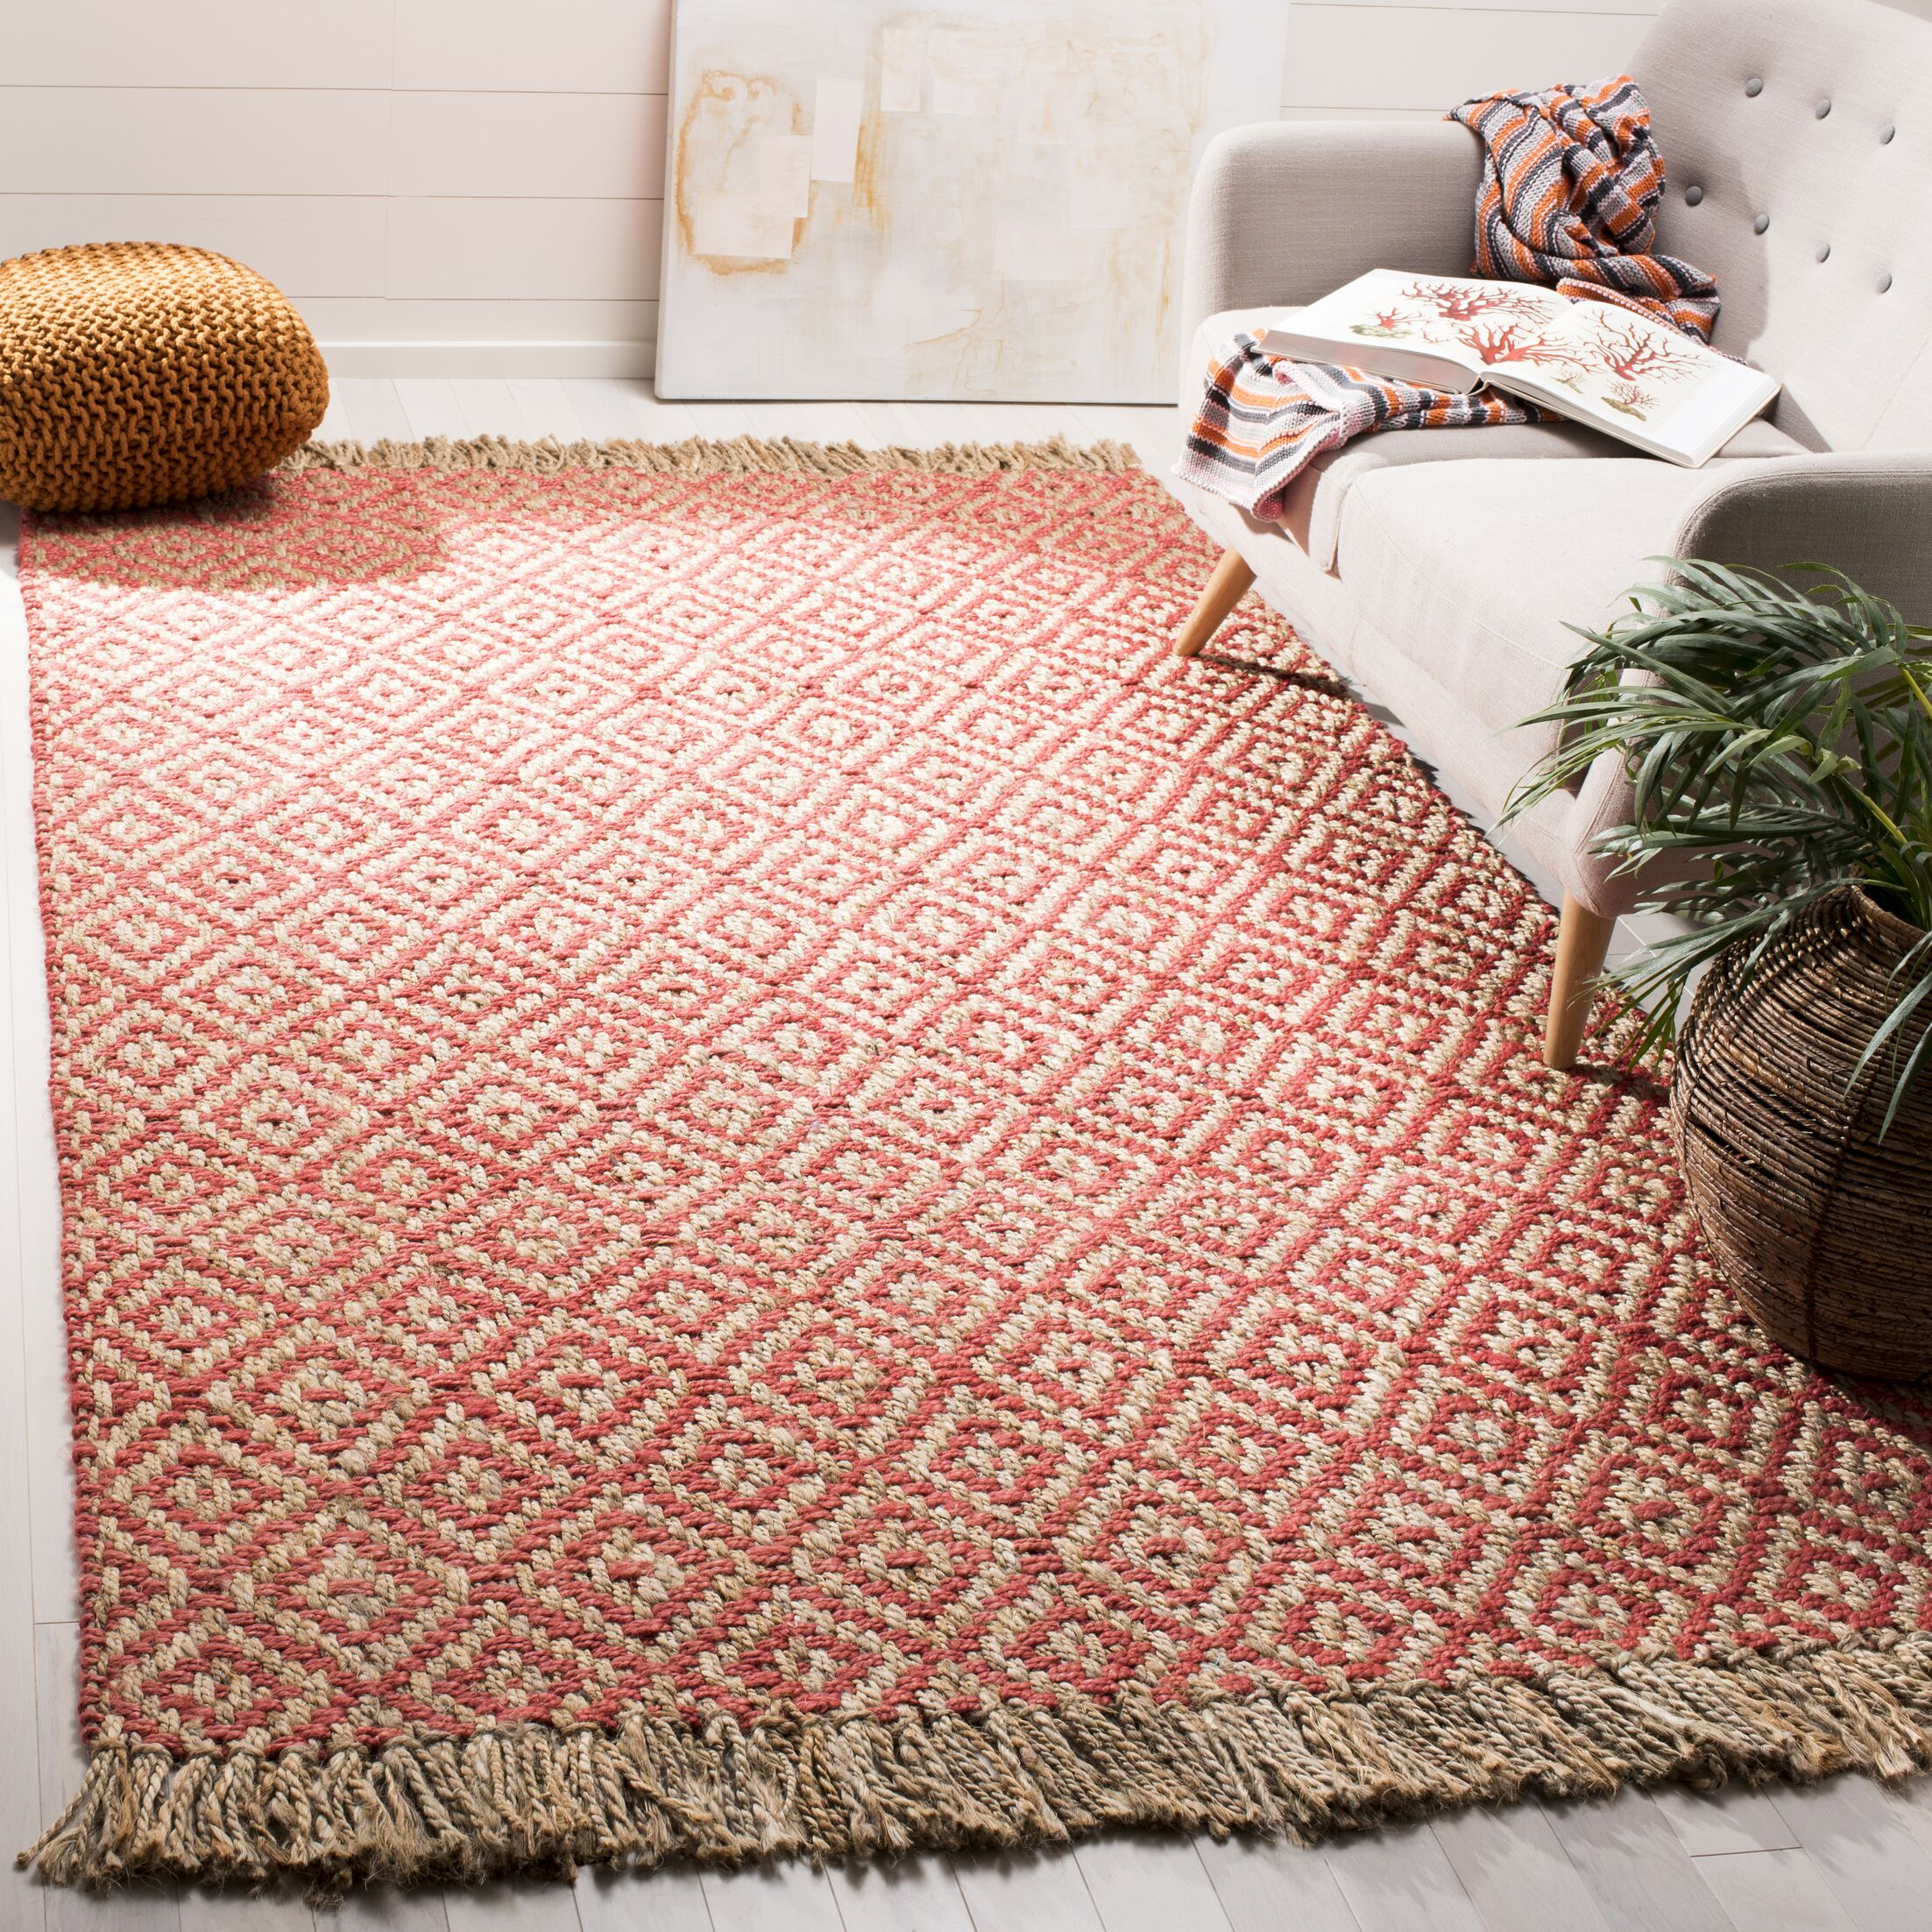 Lana Hand Woven Fuchsia Area Rug Rug Size: Rectangle 4' x 6'